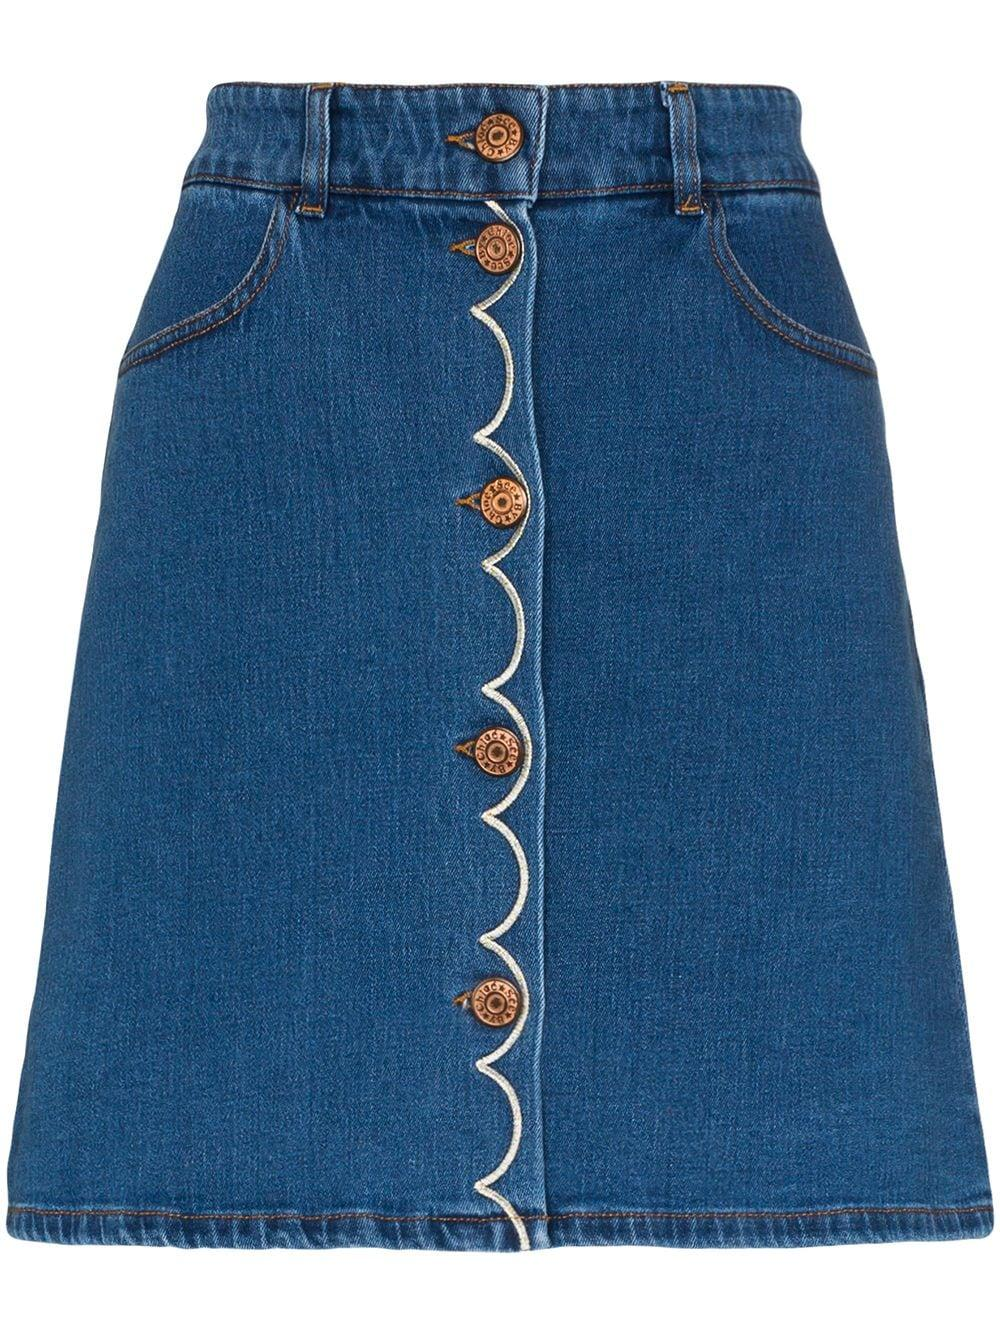 Denim Skirt Item # CHS20SDJ03150